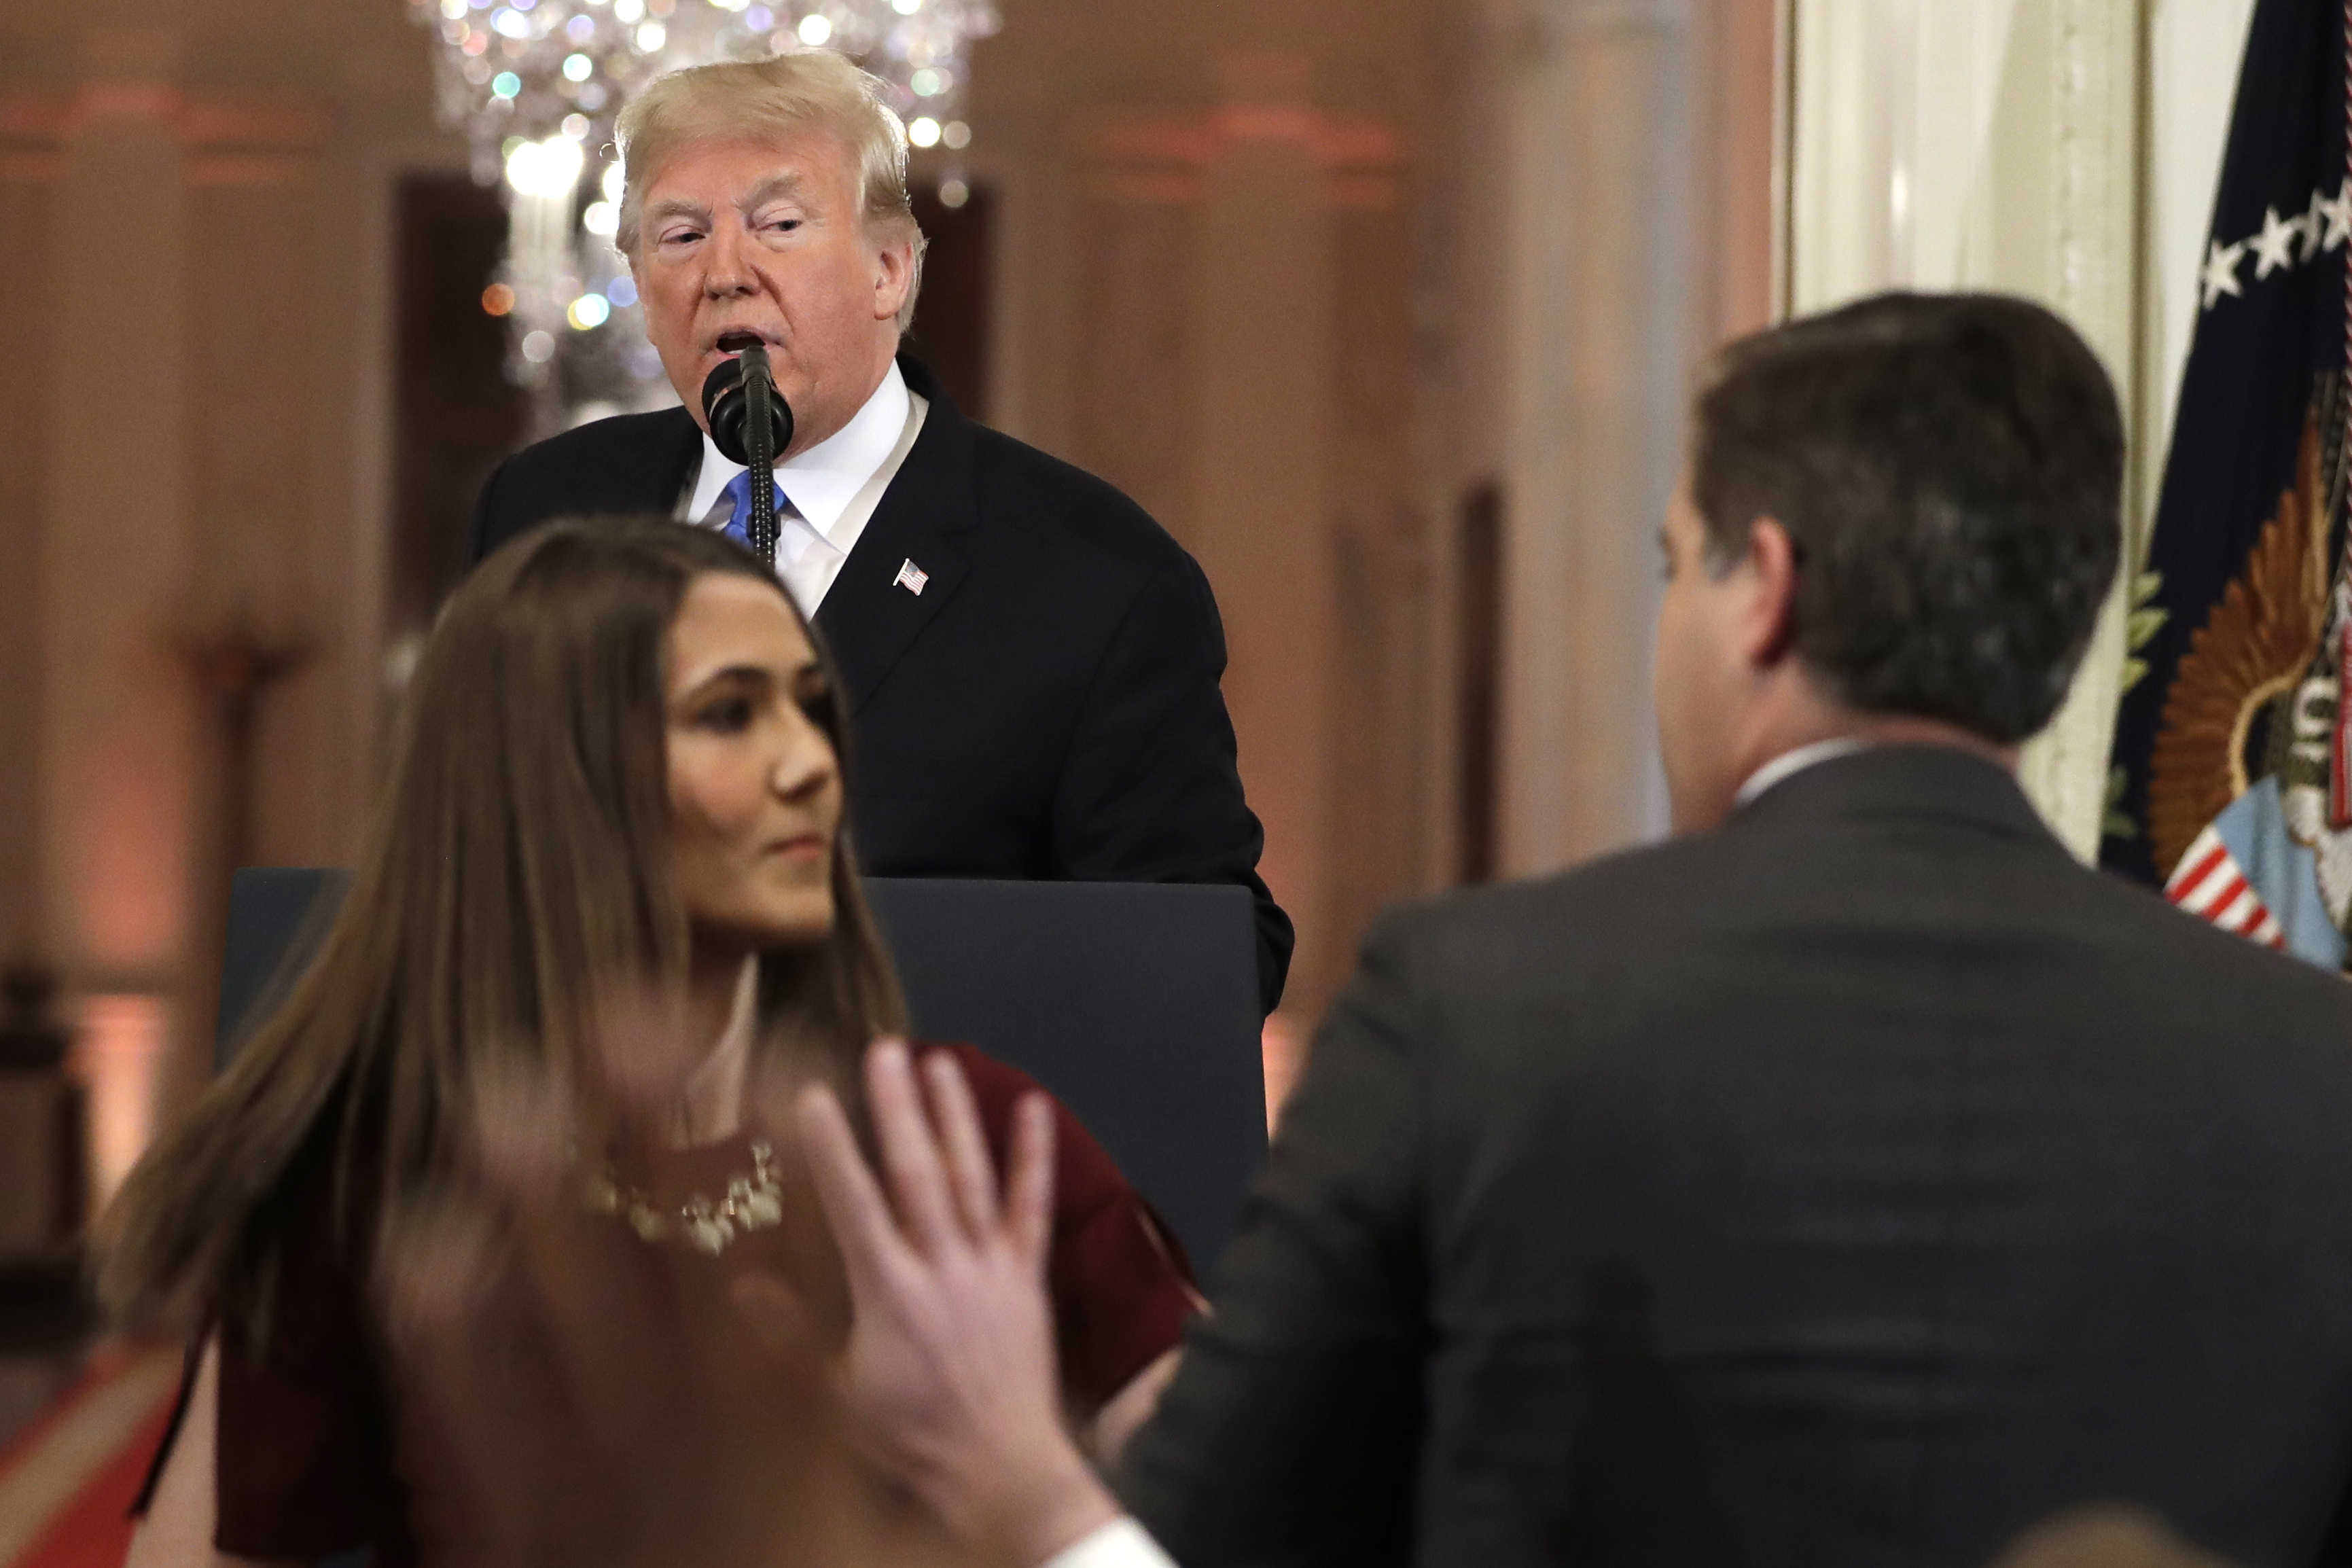 As President Donald Trump watches, a White House aide takes the microphone from CNN's Jim Acosta, during a news conference in the East Room of the White House, Wednesday, Nov. 7, 2018, in Washington. (AP Photo/Evan Vucci)